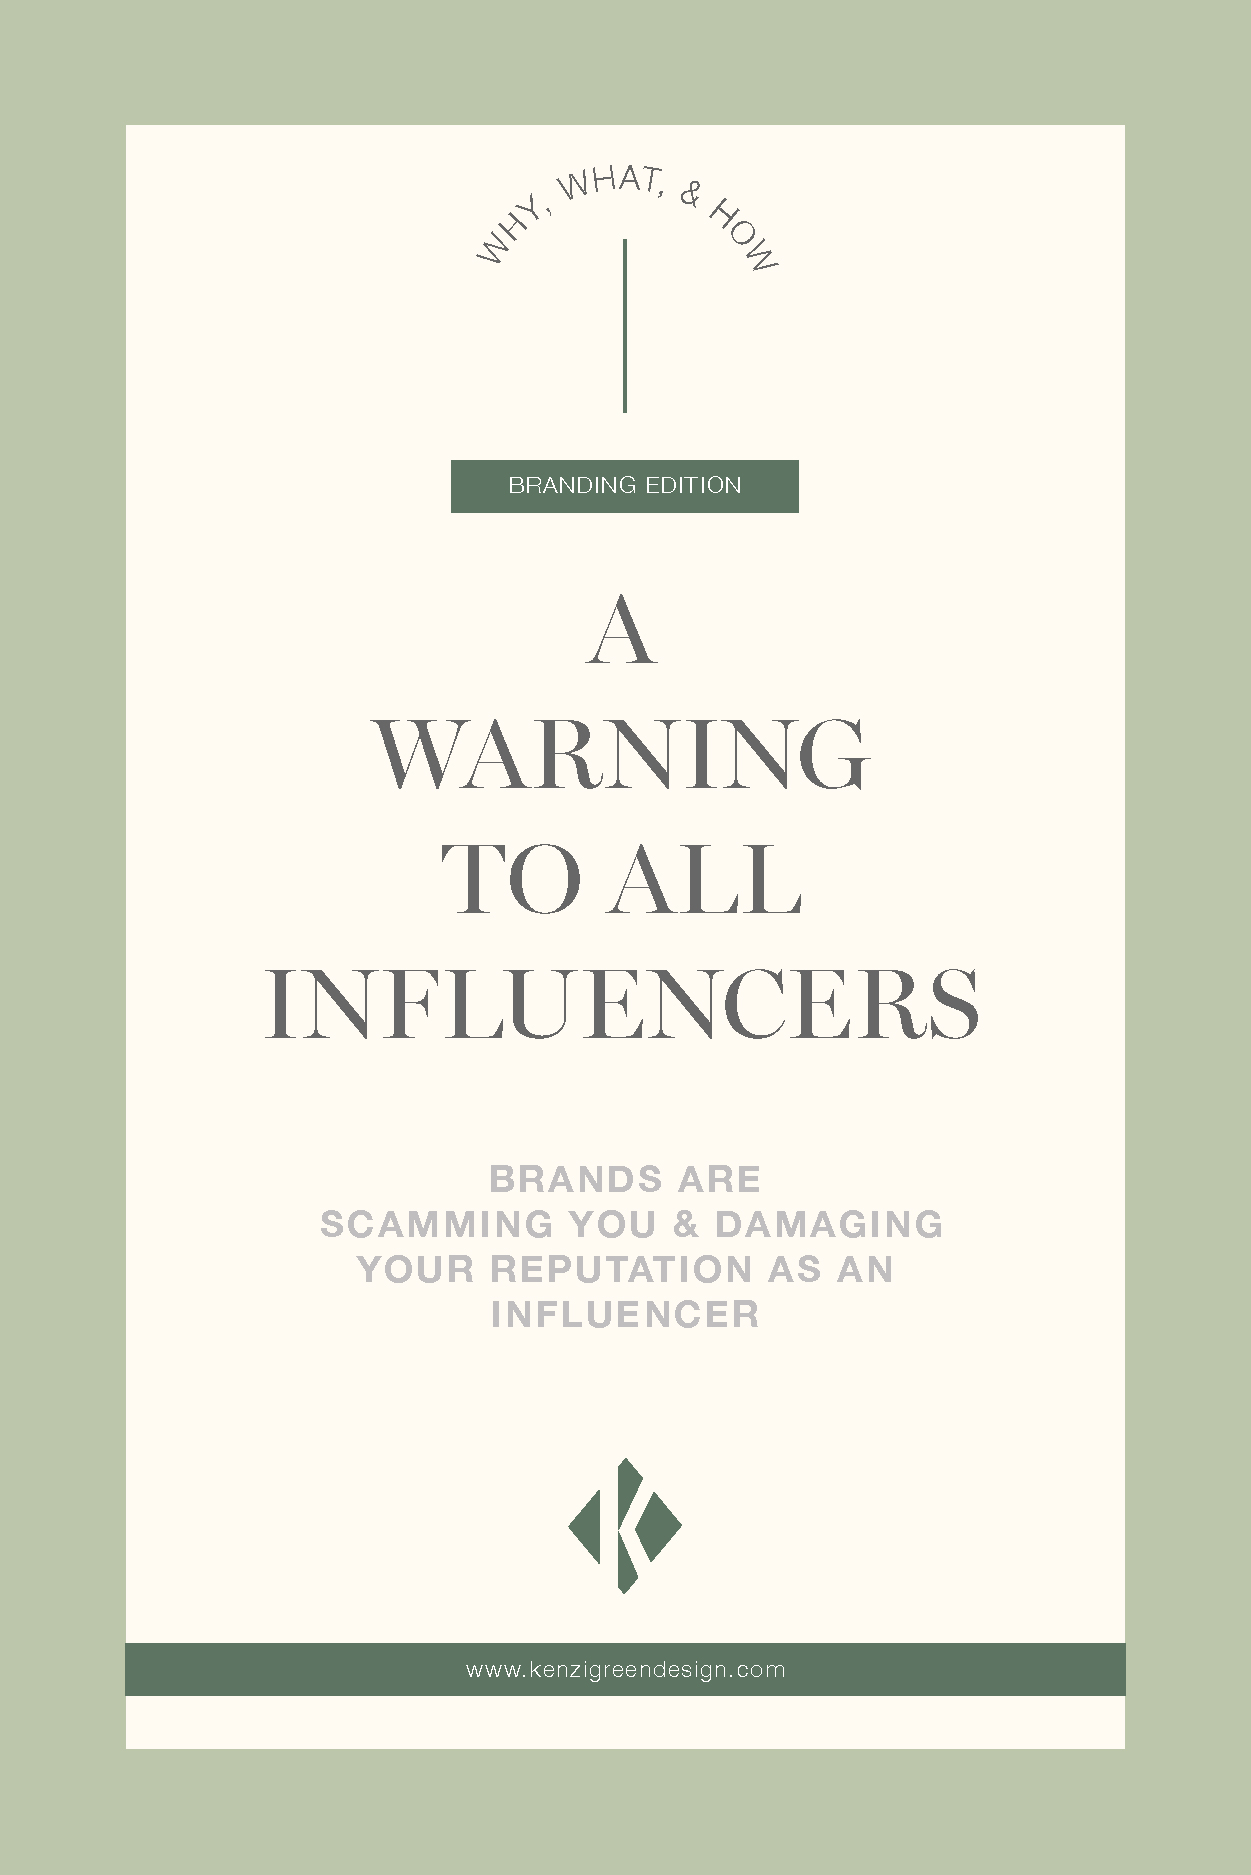 A warning to all influencers